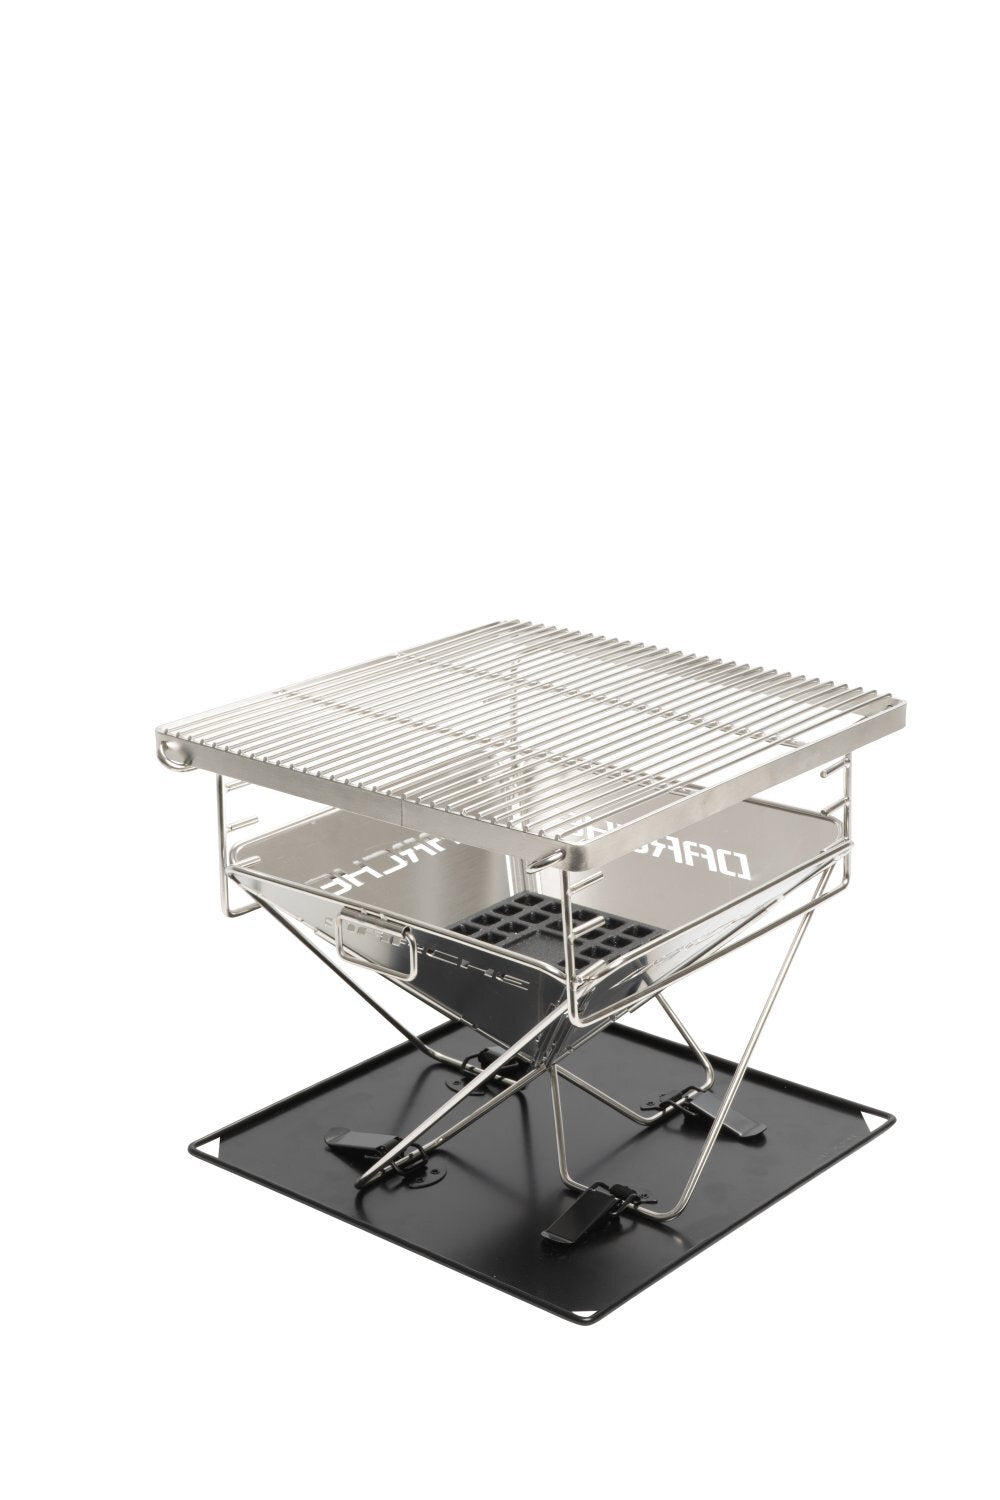 Darche Stainless Steel BBQ 310 Firepit